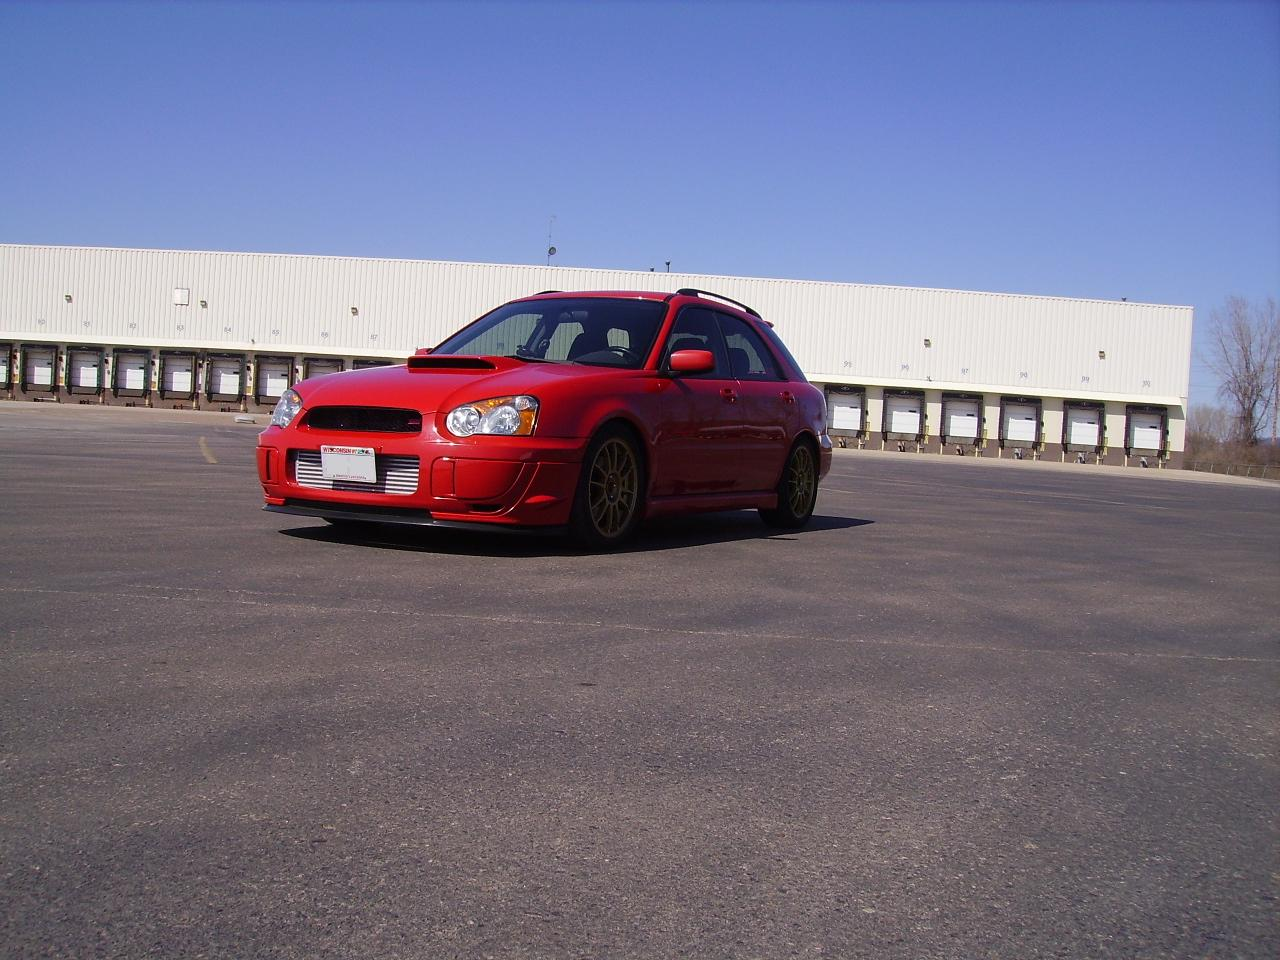 2004  Subaru Impreza WRX Wagon picture, mods, upgrades